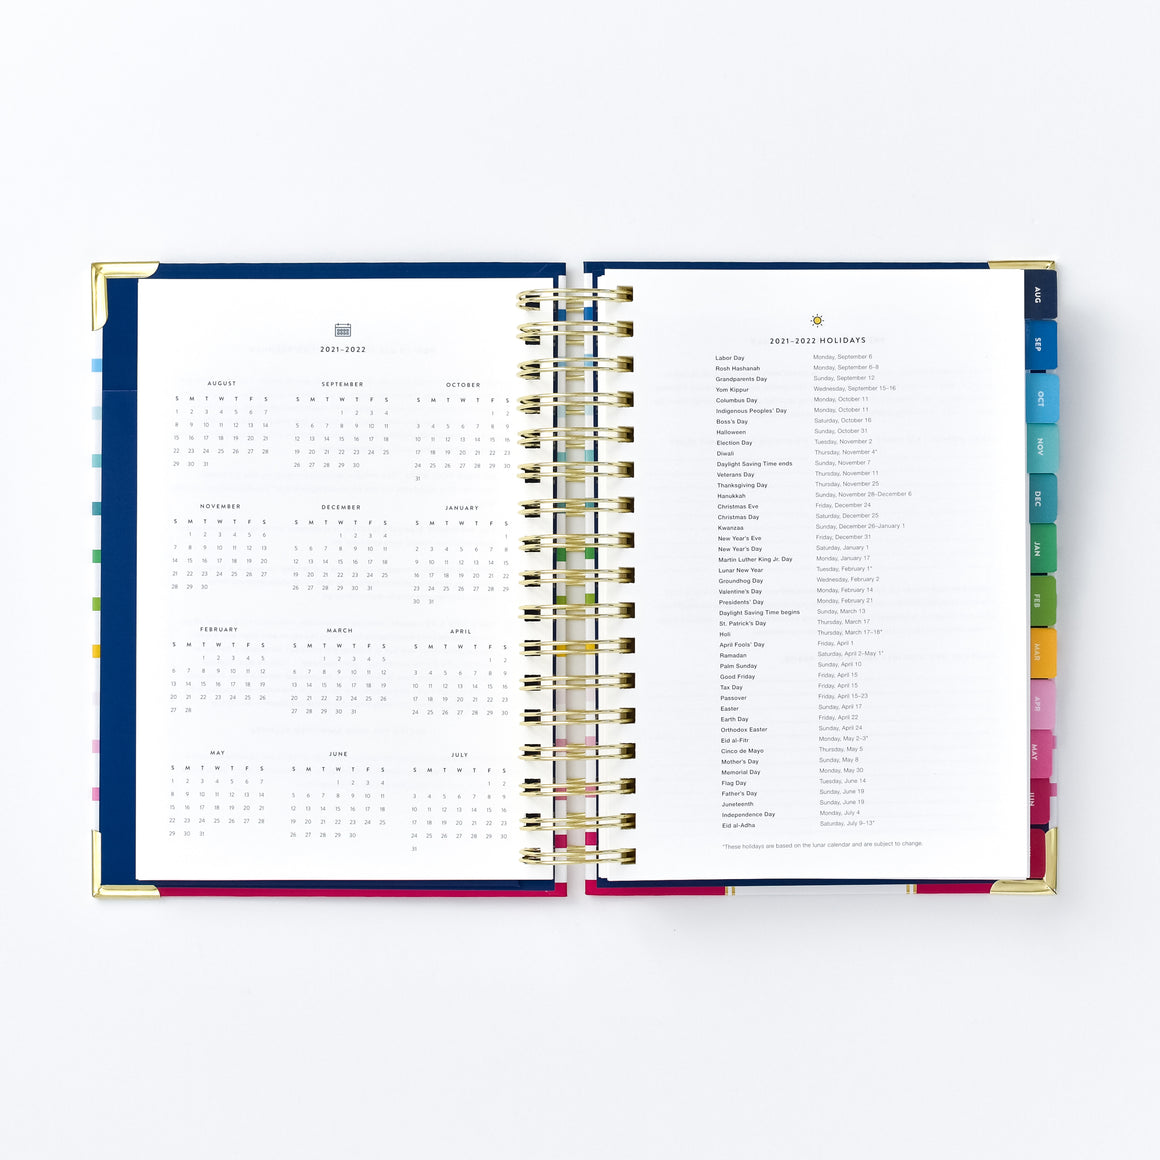 YEARLY CALENDAR & HOLIDAYS LIST